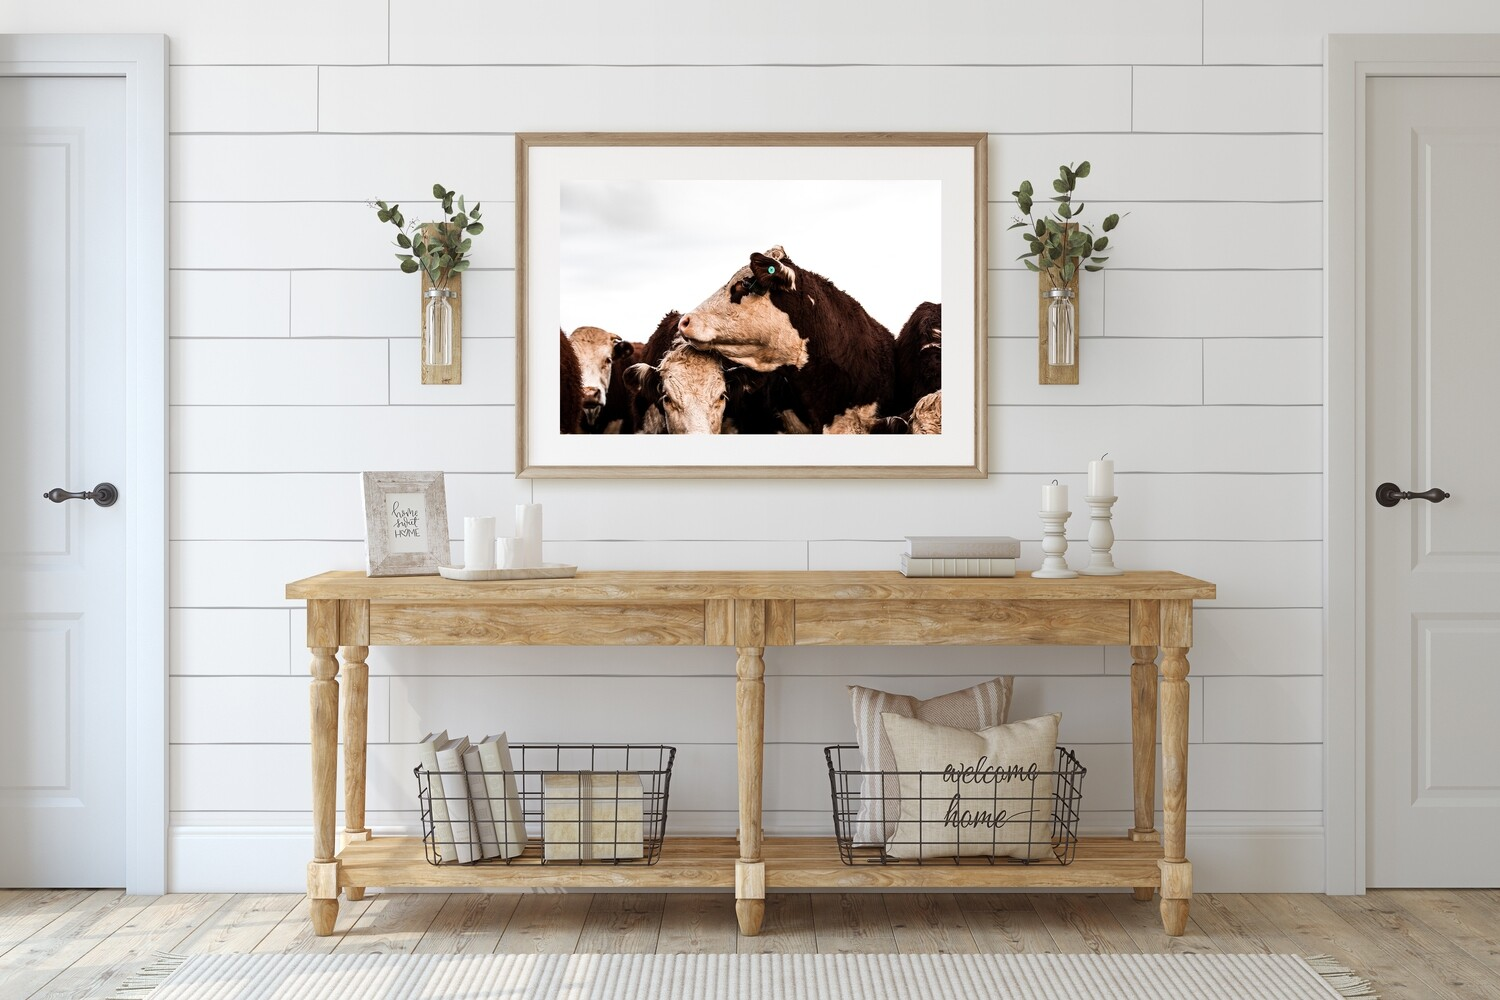 'Hereford Heifers' - Starting from $60